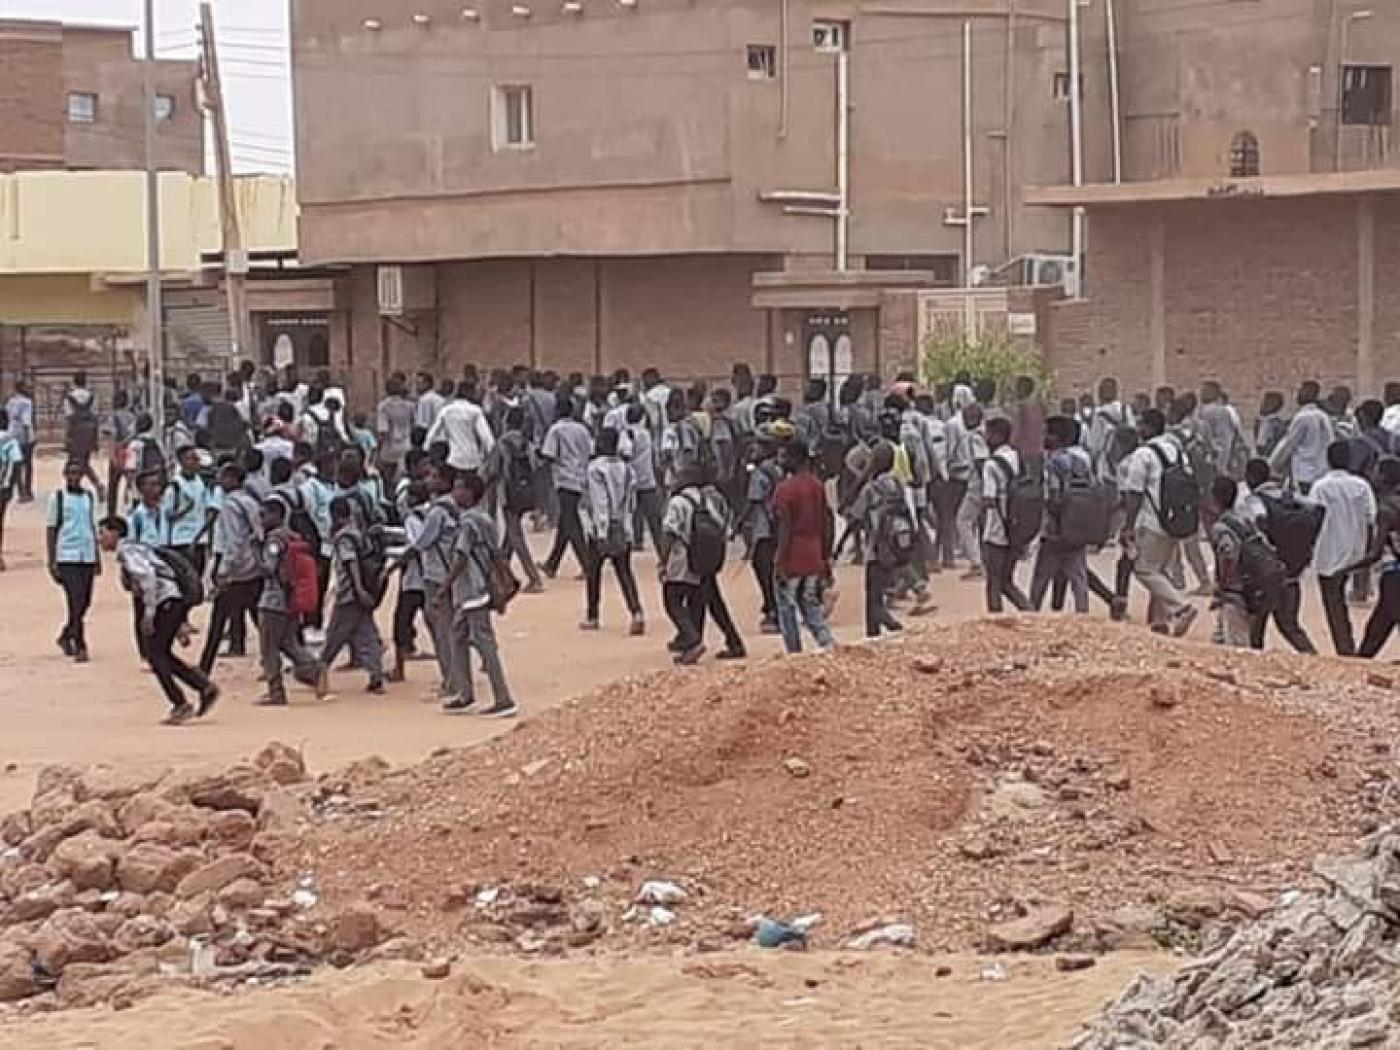 Four students shot dead at Sudan protest -opposition medics